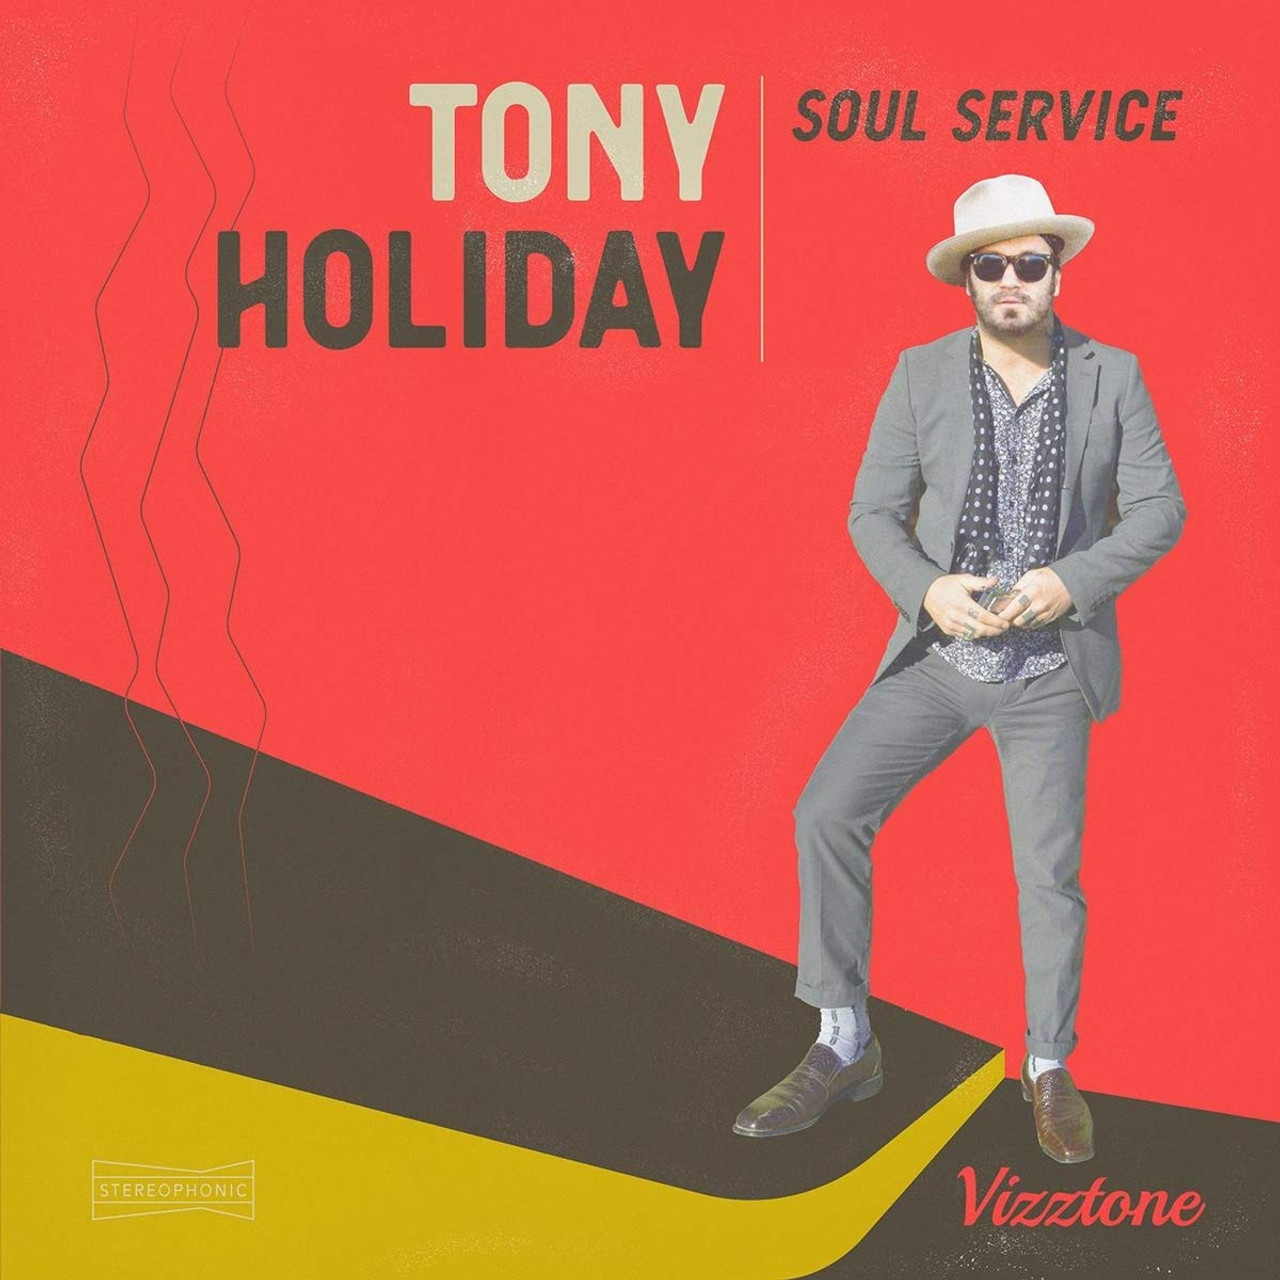 TONY HOLIDAY - SOUL SERVICE